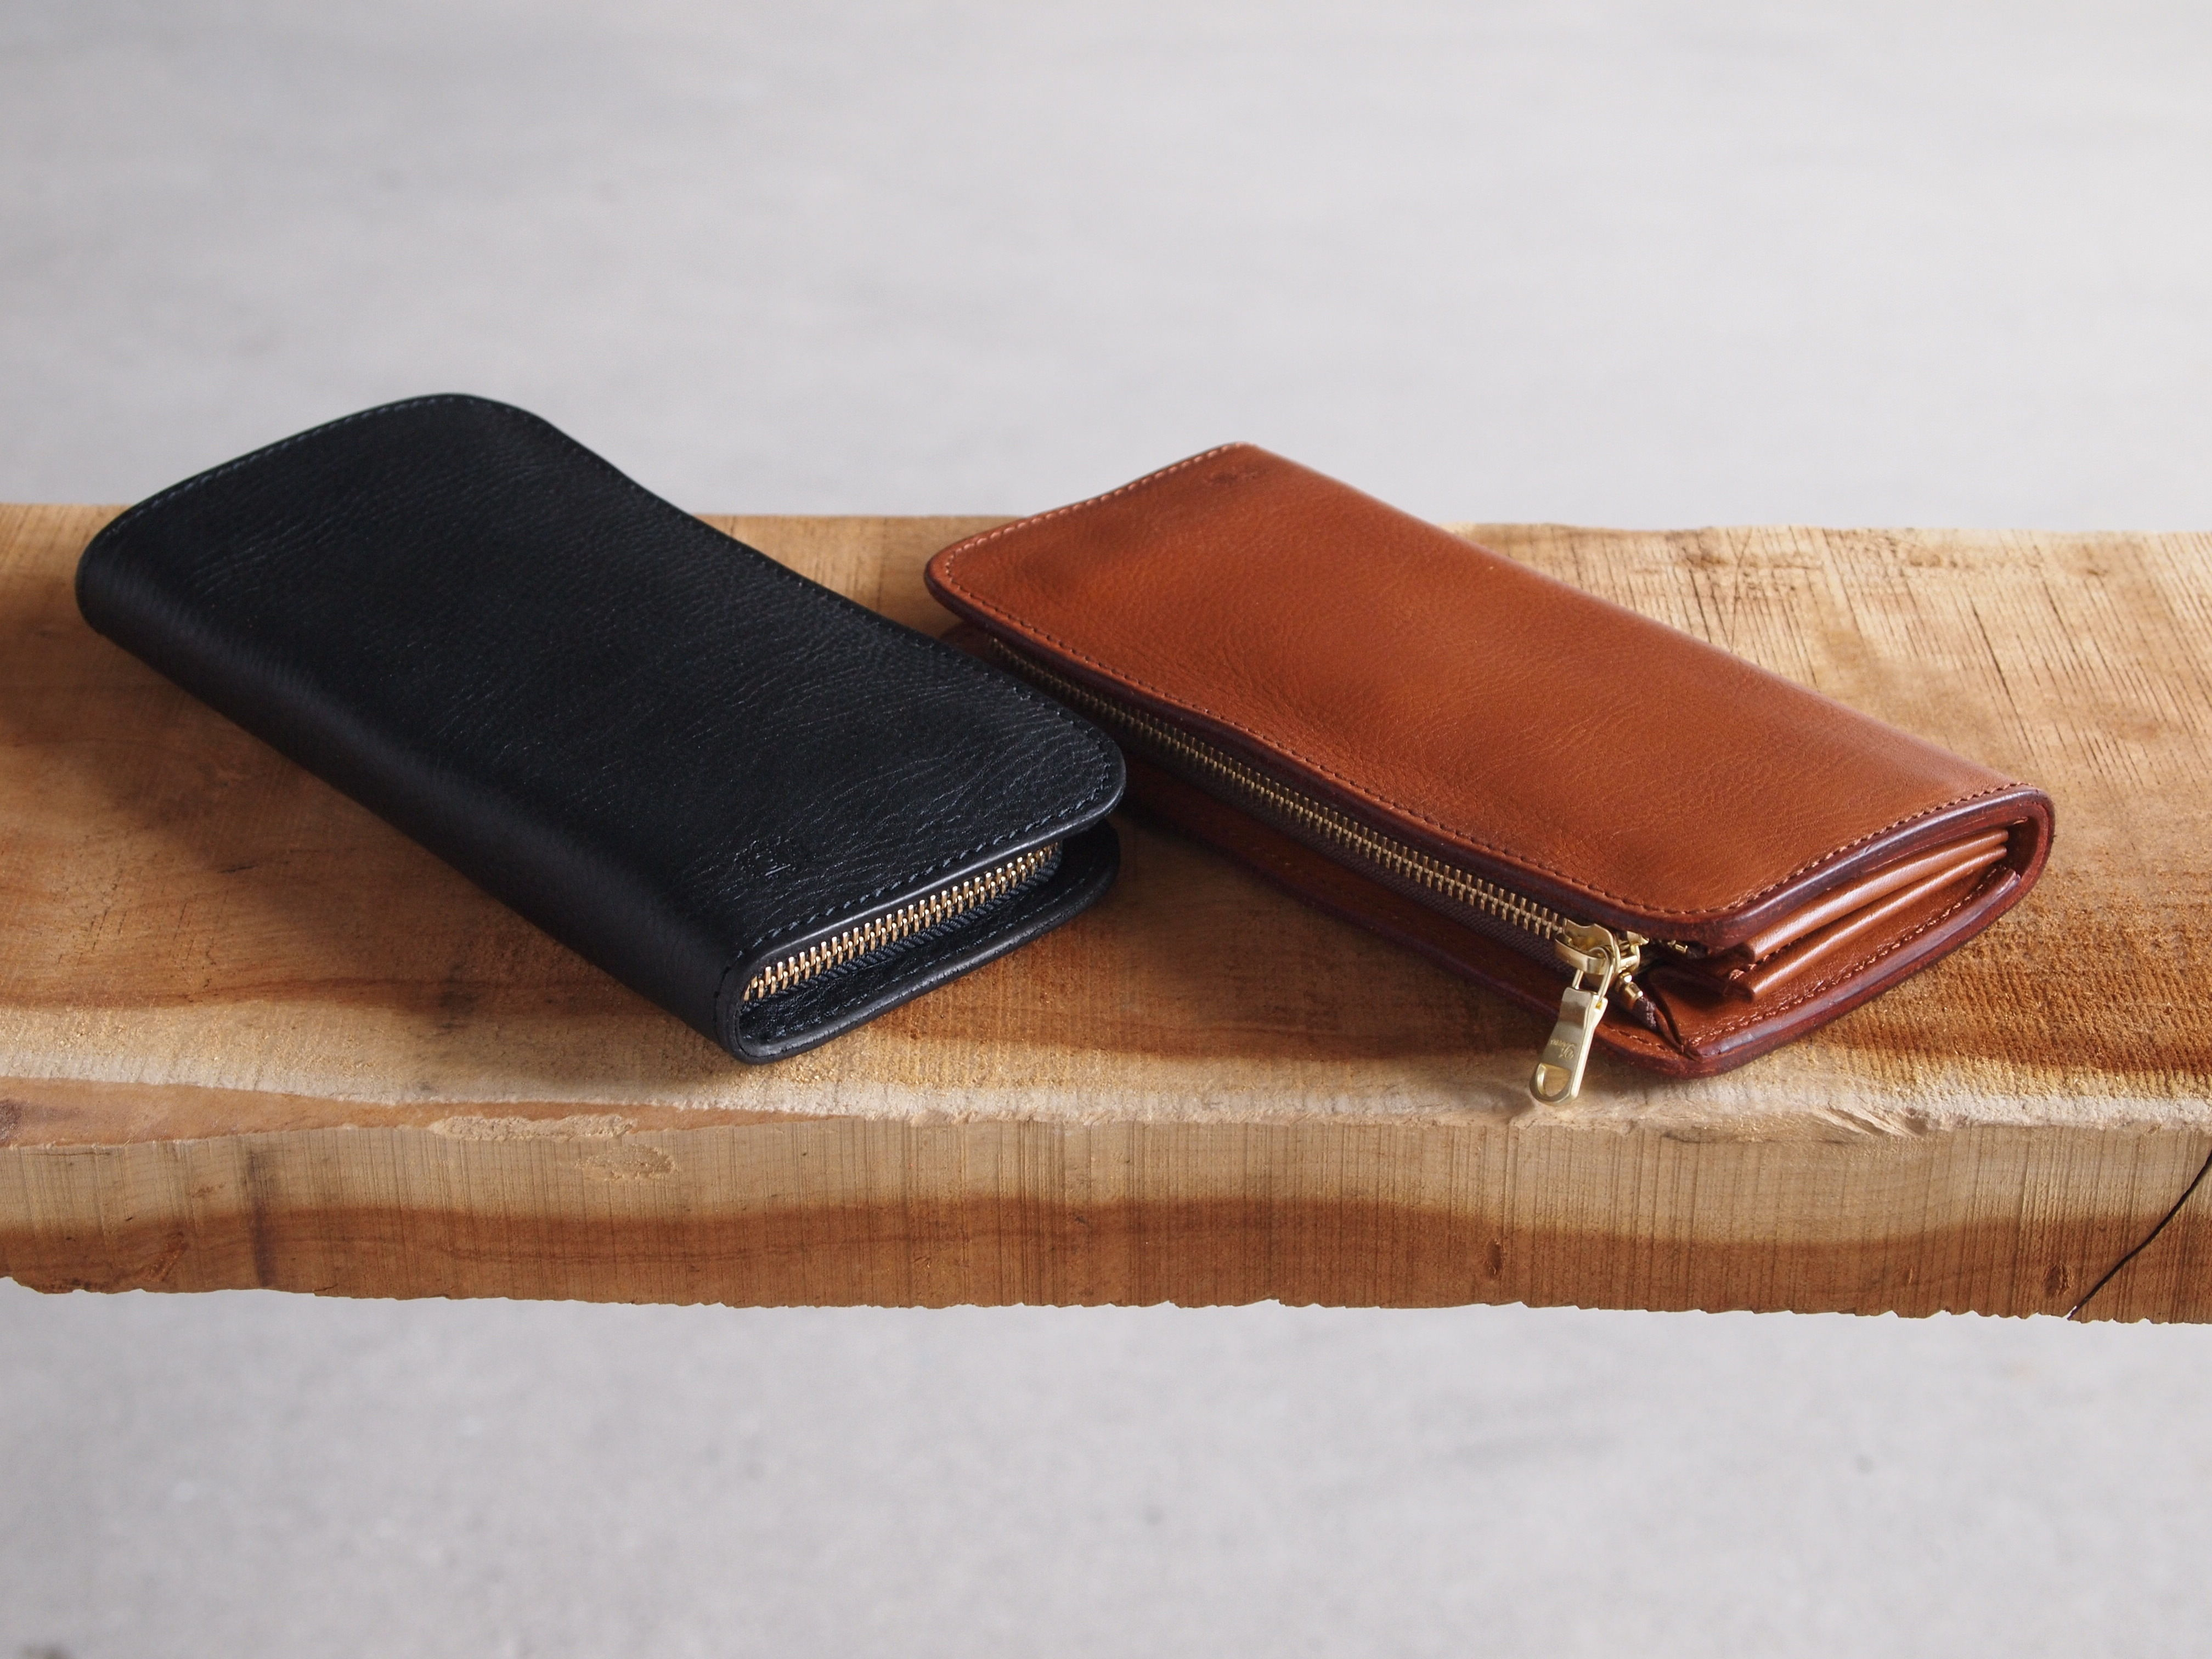 Dono〈ドーノ〉 LONG ZIP WALLET BLACK/CHOCO/BROWN/NUME/YELLOW/RED/TURQUOISE